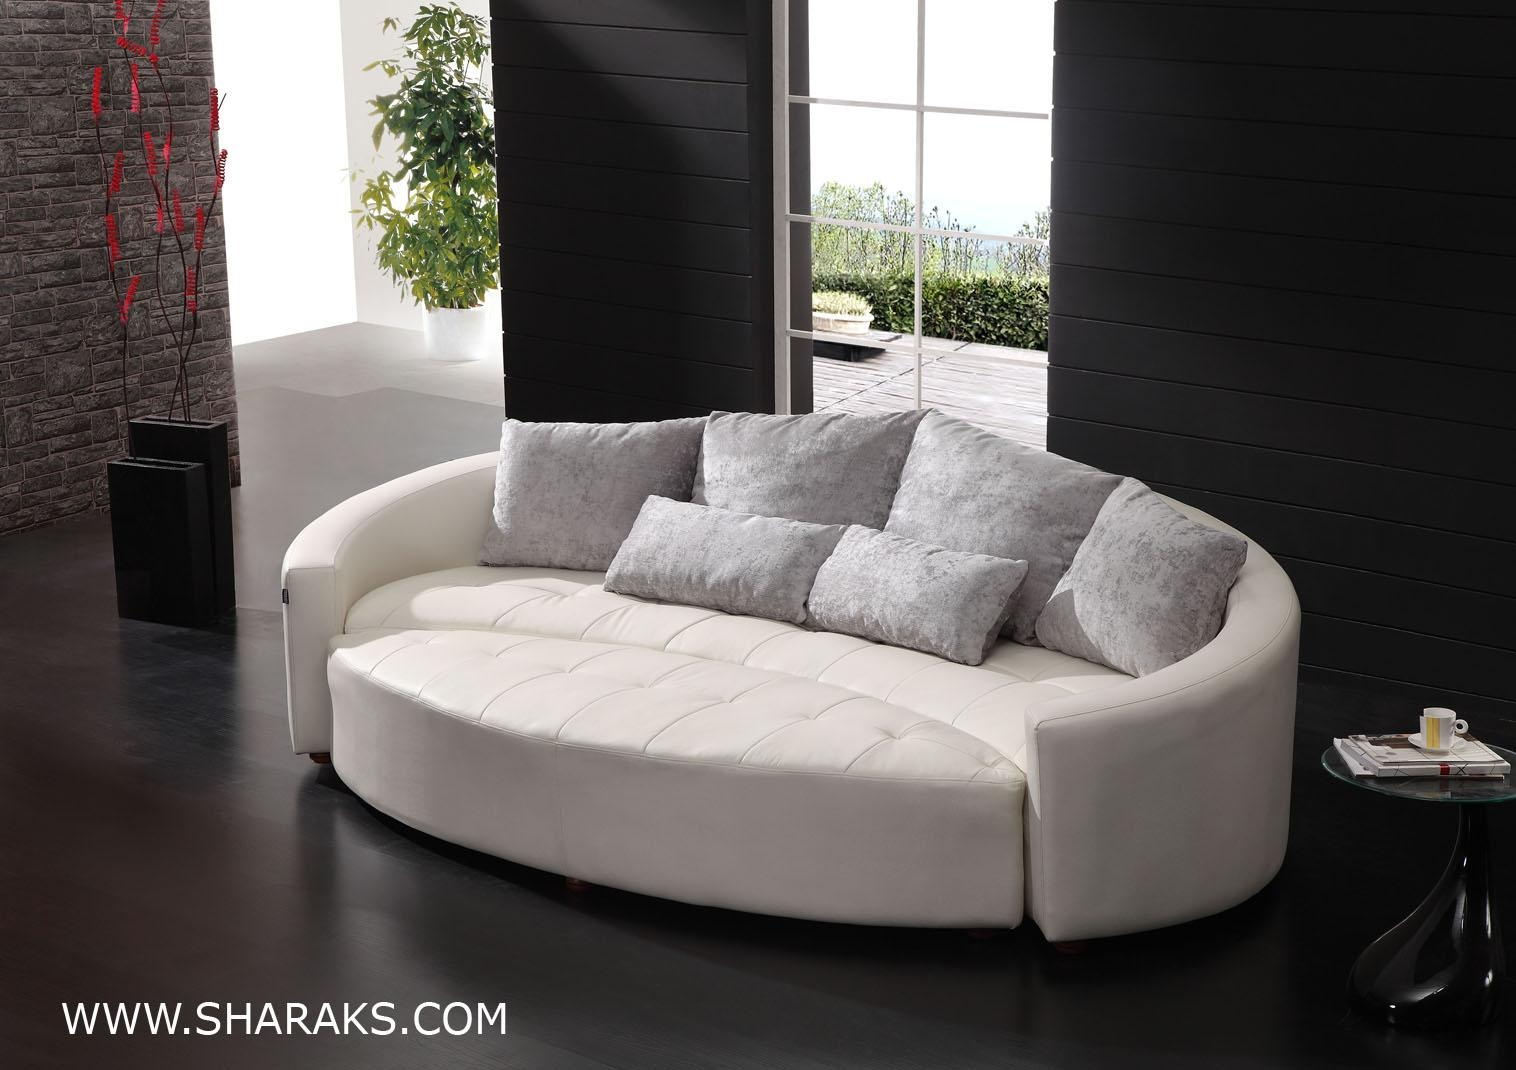 Sofas Center : Furniture Foot Stools Big Round Sofa Chair Large Intended For Big Round Sofa Chairs (Image 14 of 20)